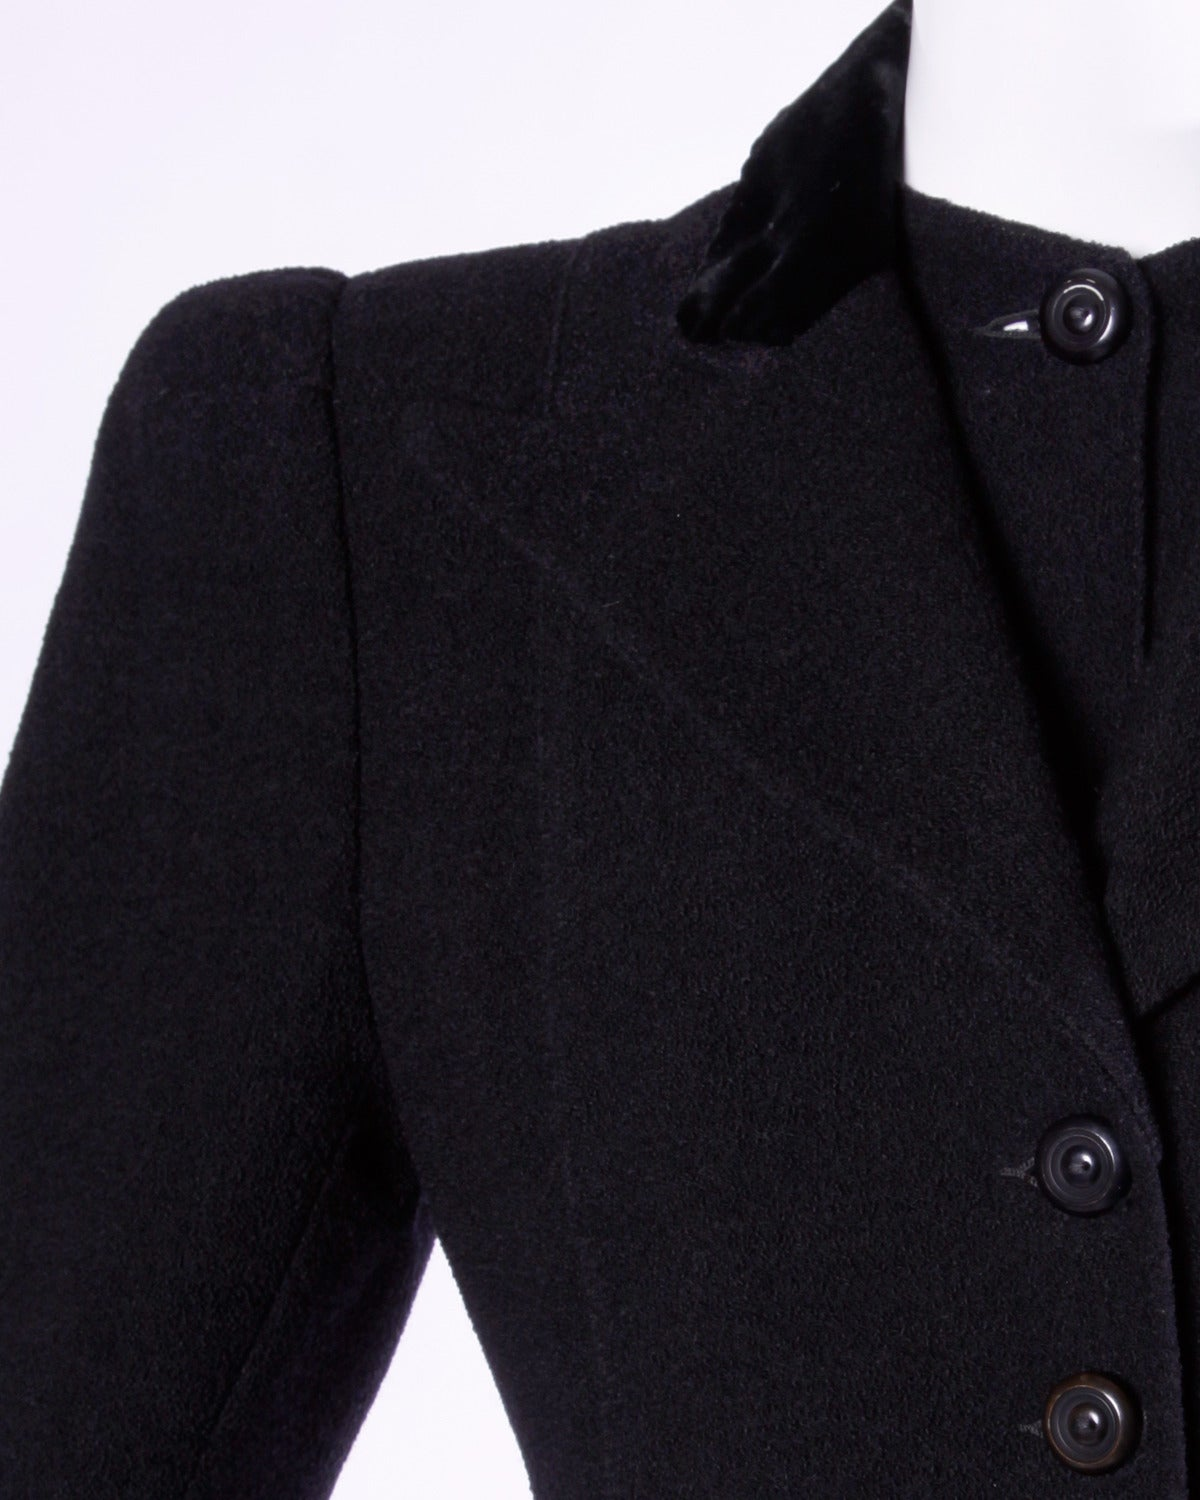 Gorgeous black wool tailored coat from the 1940s featuring bold shoulders and flared princess shape. Unique collar detail buttons under the lapels giving the appearance of a second piece.